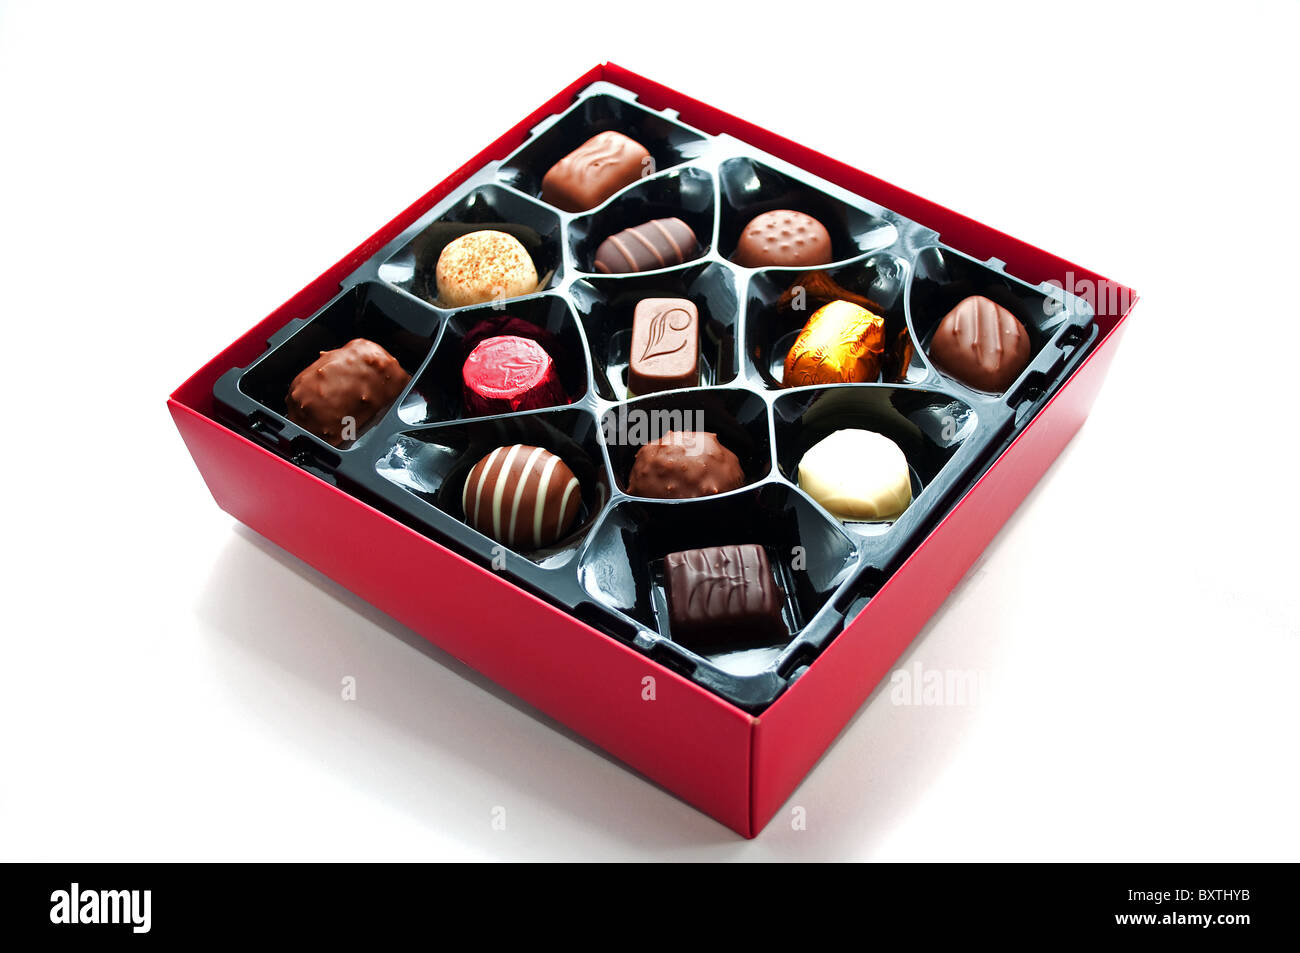 A box of Thorntons chocolates on a white background - Stock Image